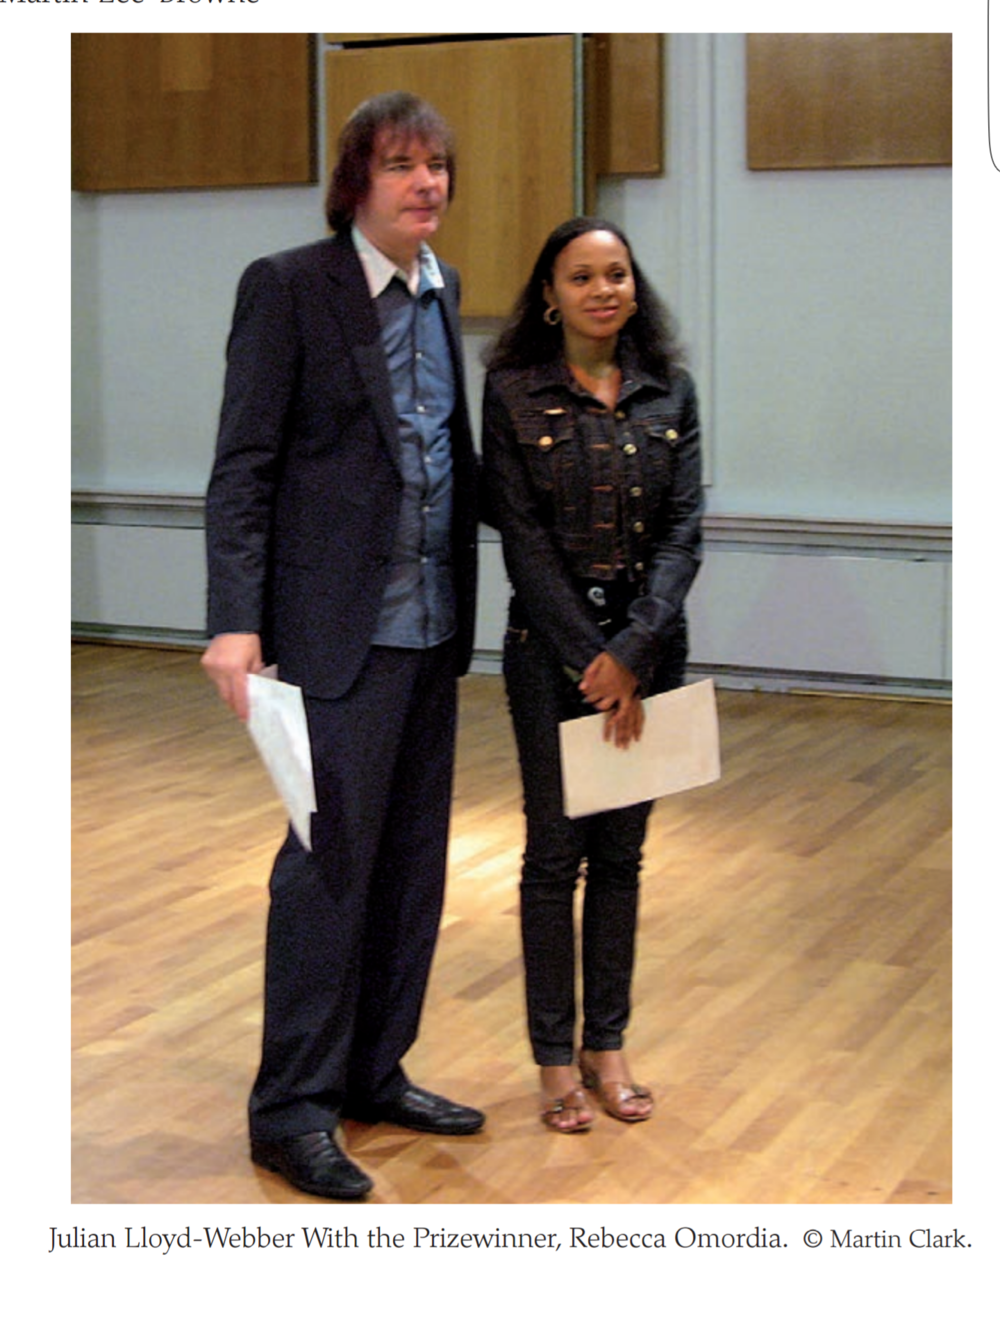 Julian Lloyd Webber and Rebeca Omordia - Delius Prize at Birmingham Conservatoire, 2009